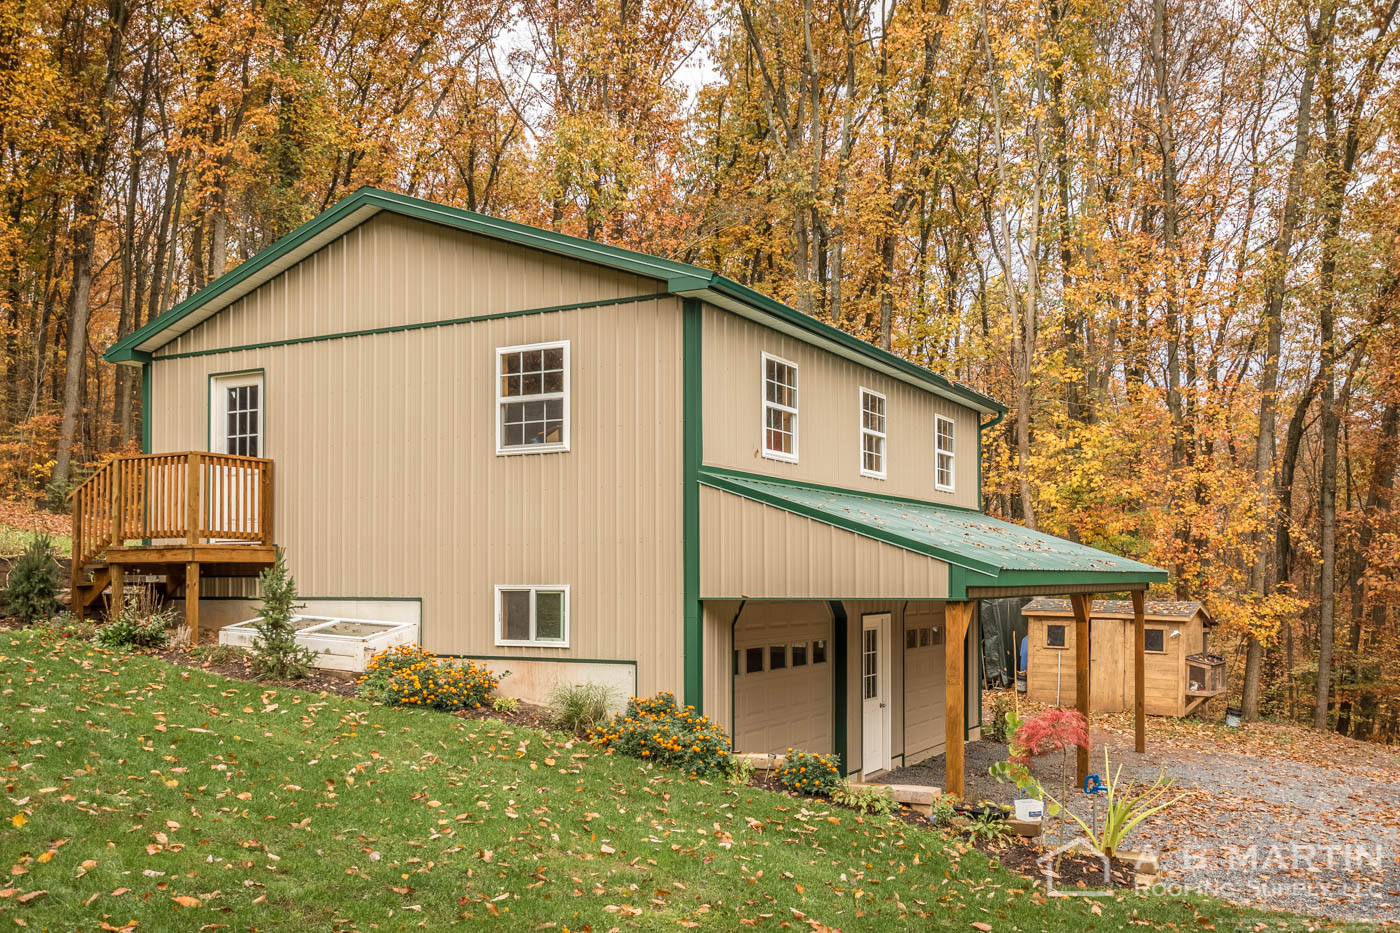 When A Former Builder Builds A 2 Story Garage In The Woods